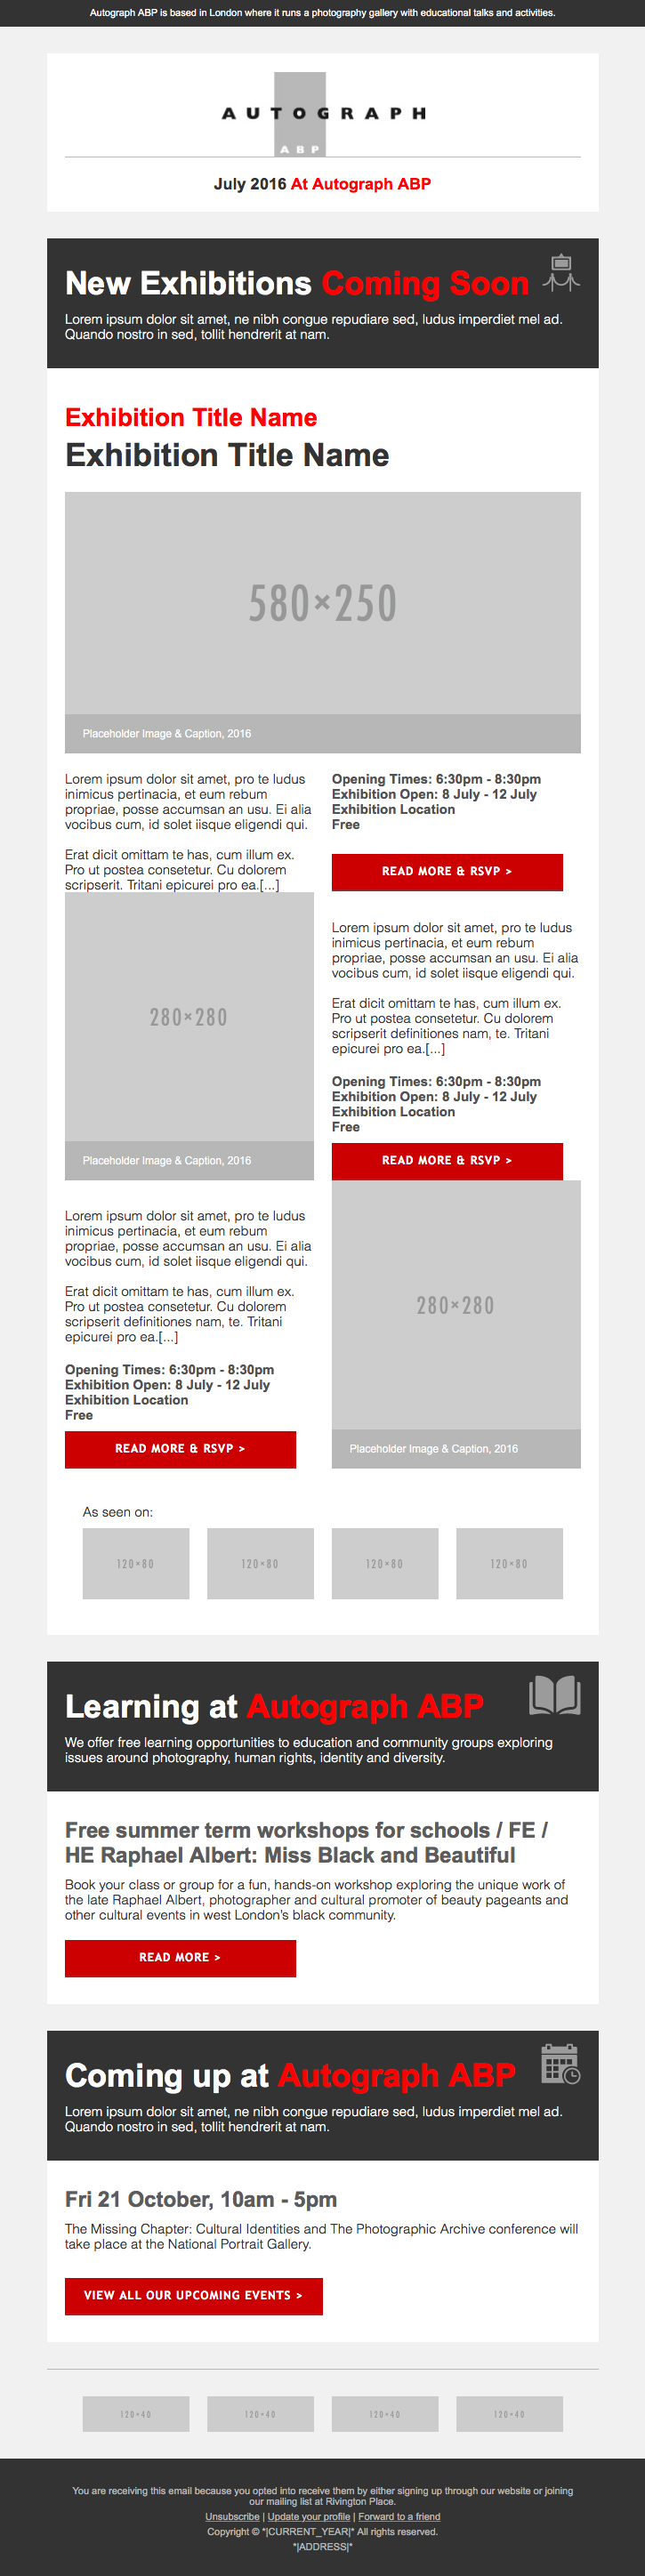 Wonderful Html Email Template Free Images - Professional Resume ...